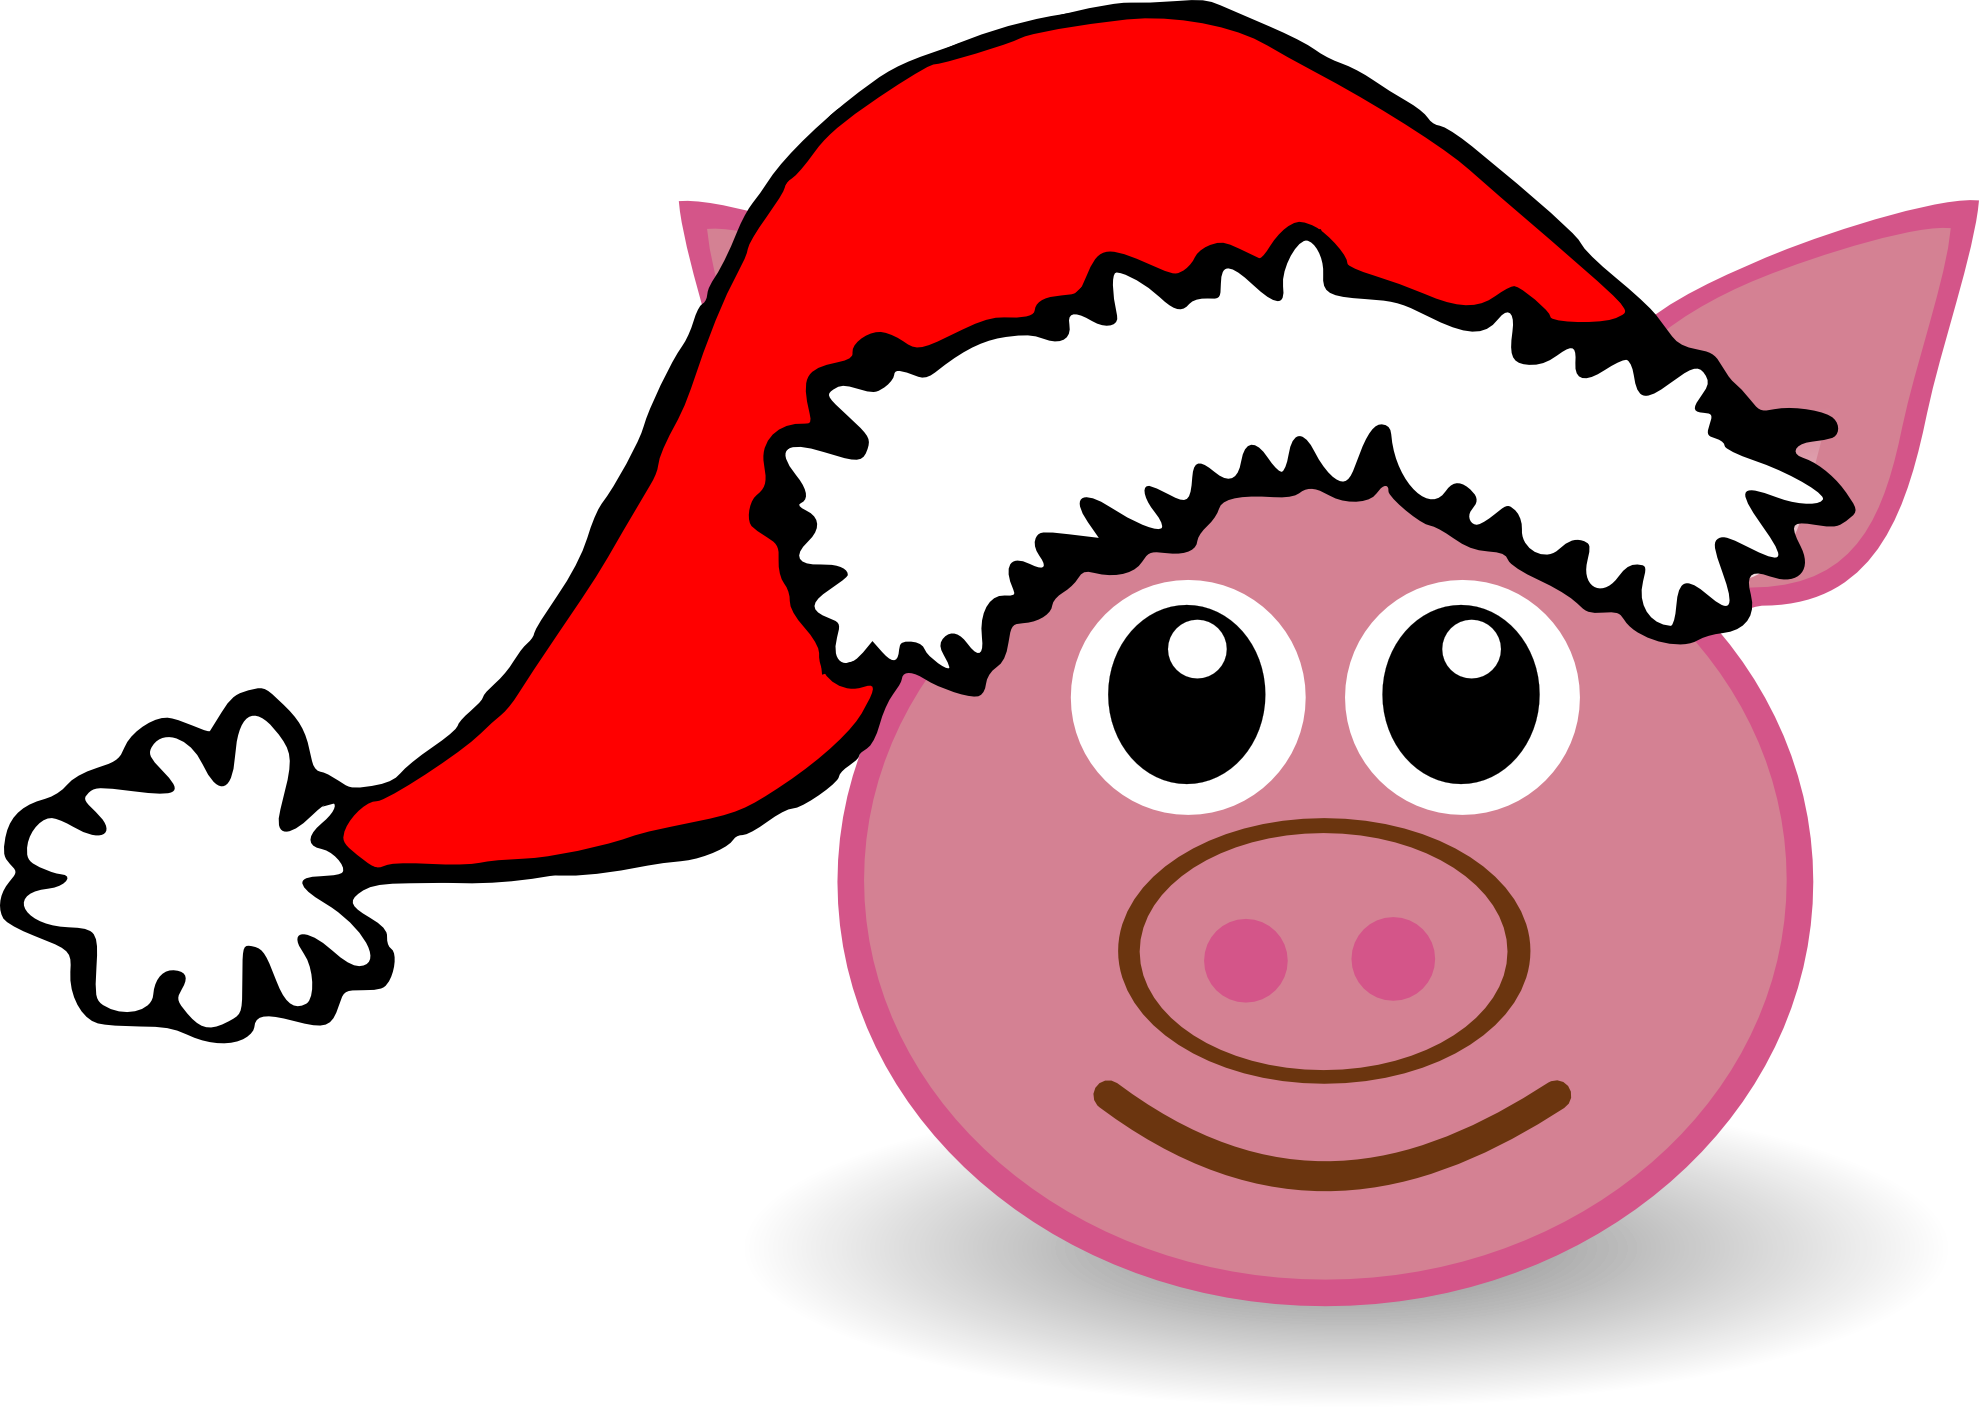 Pig face pencil and. Ham clipart pork chicken